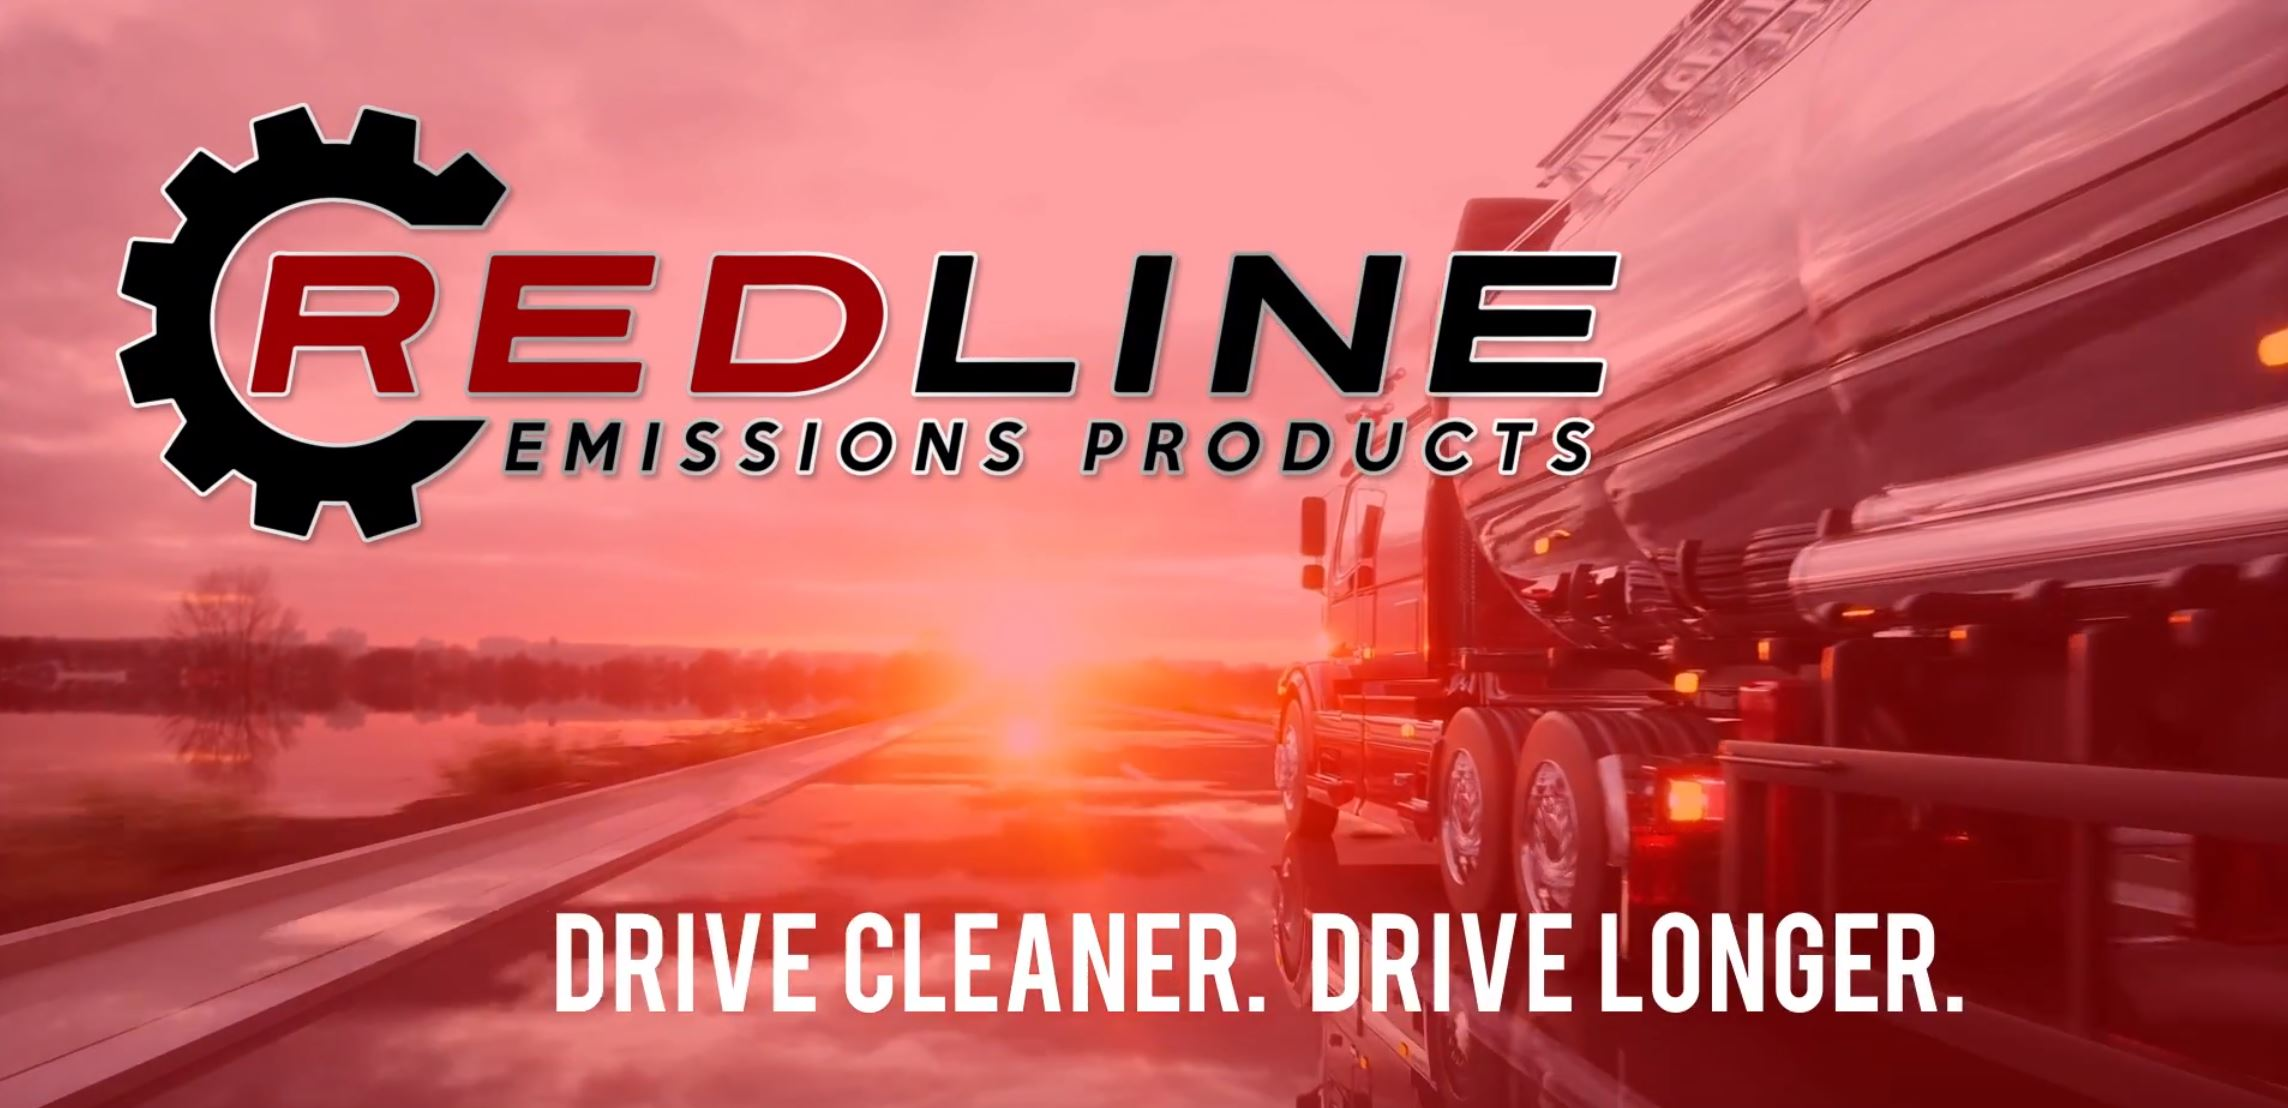 redline-drive-cleaner-drive-longer.jpg